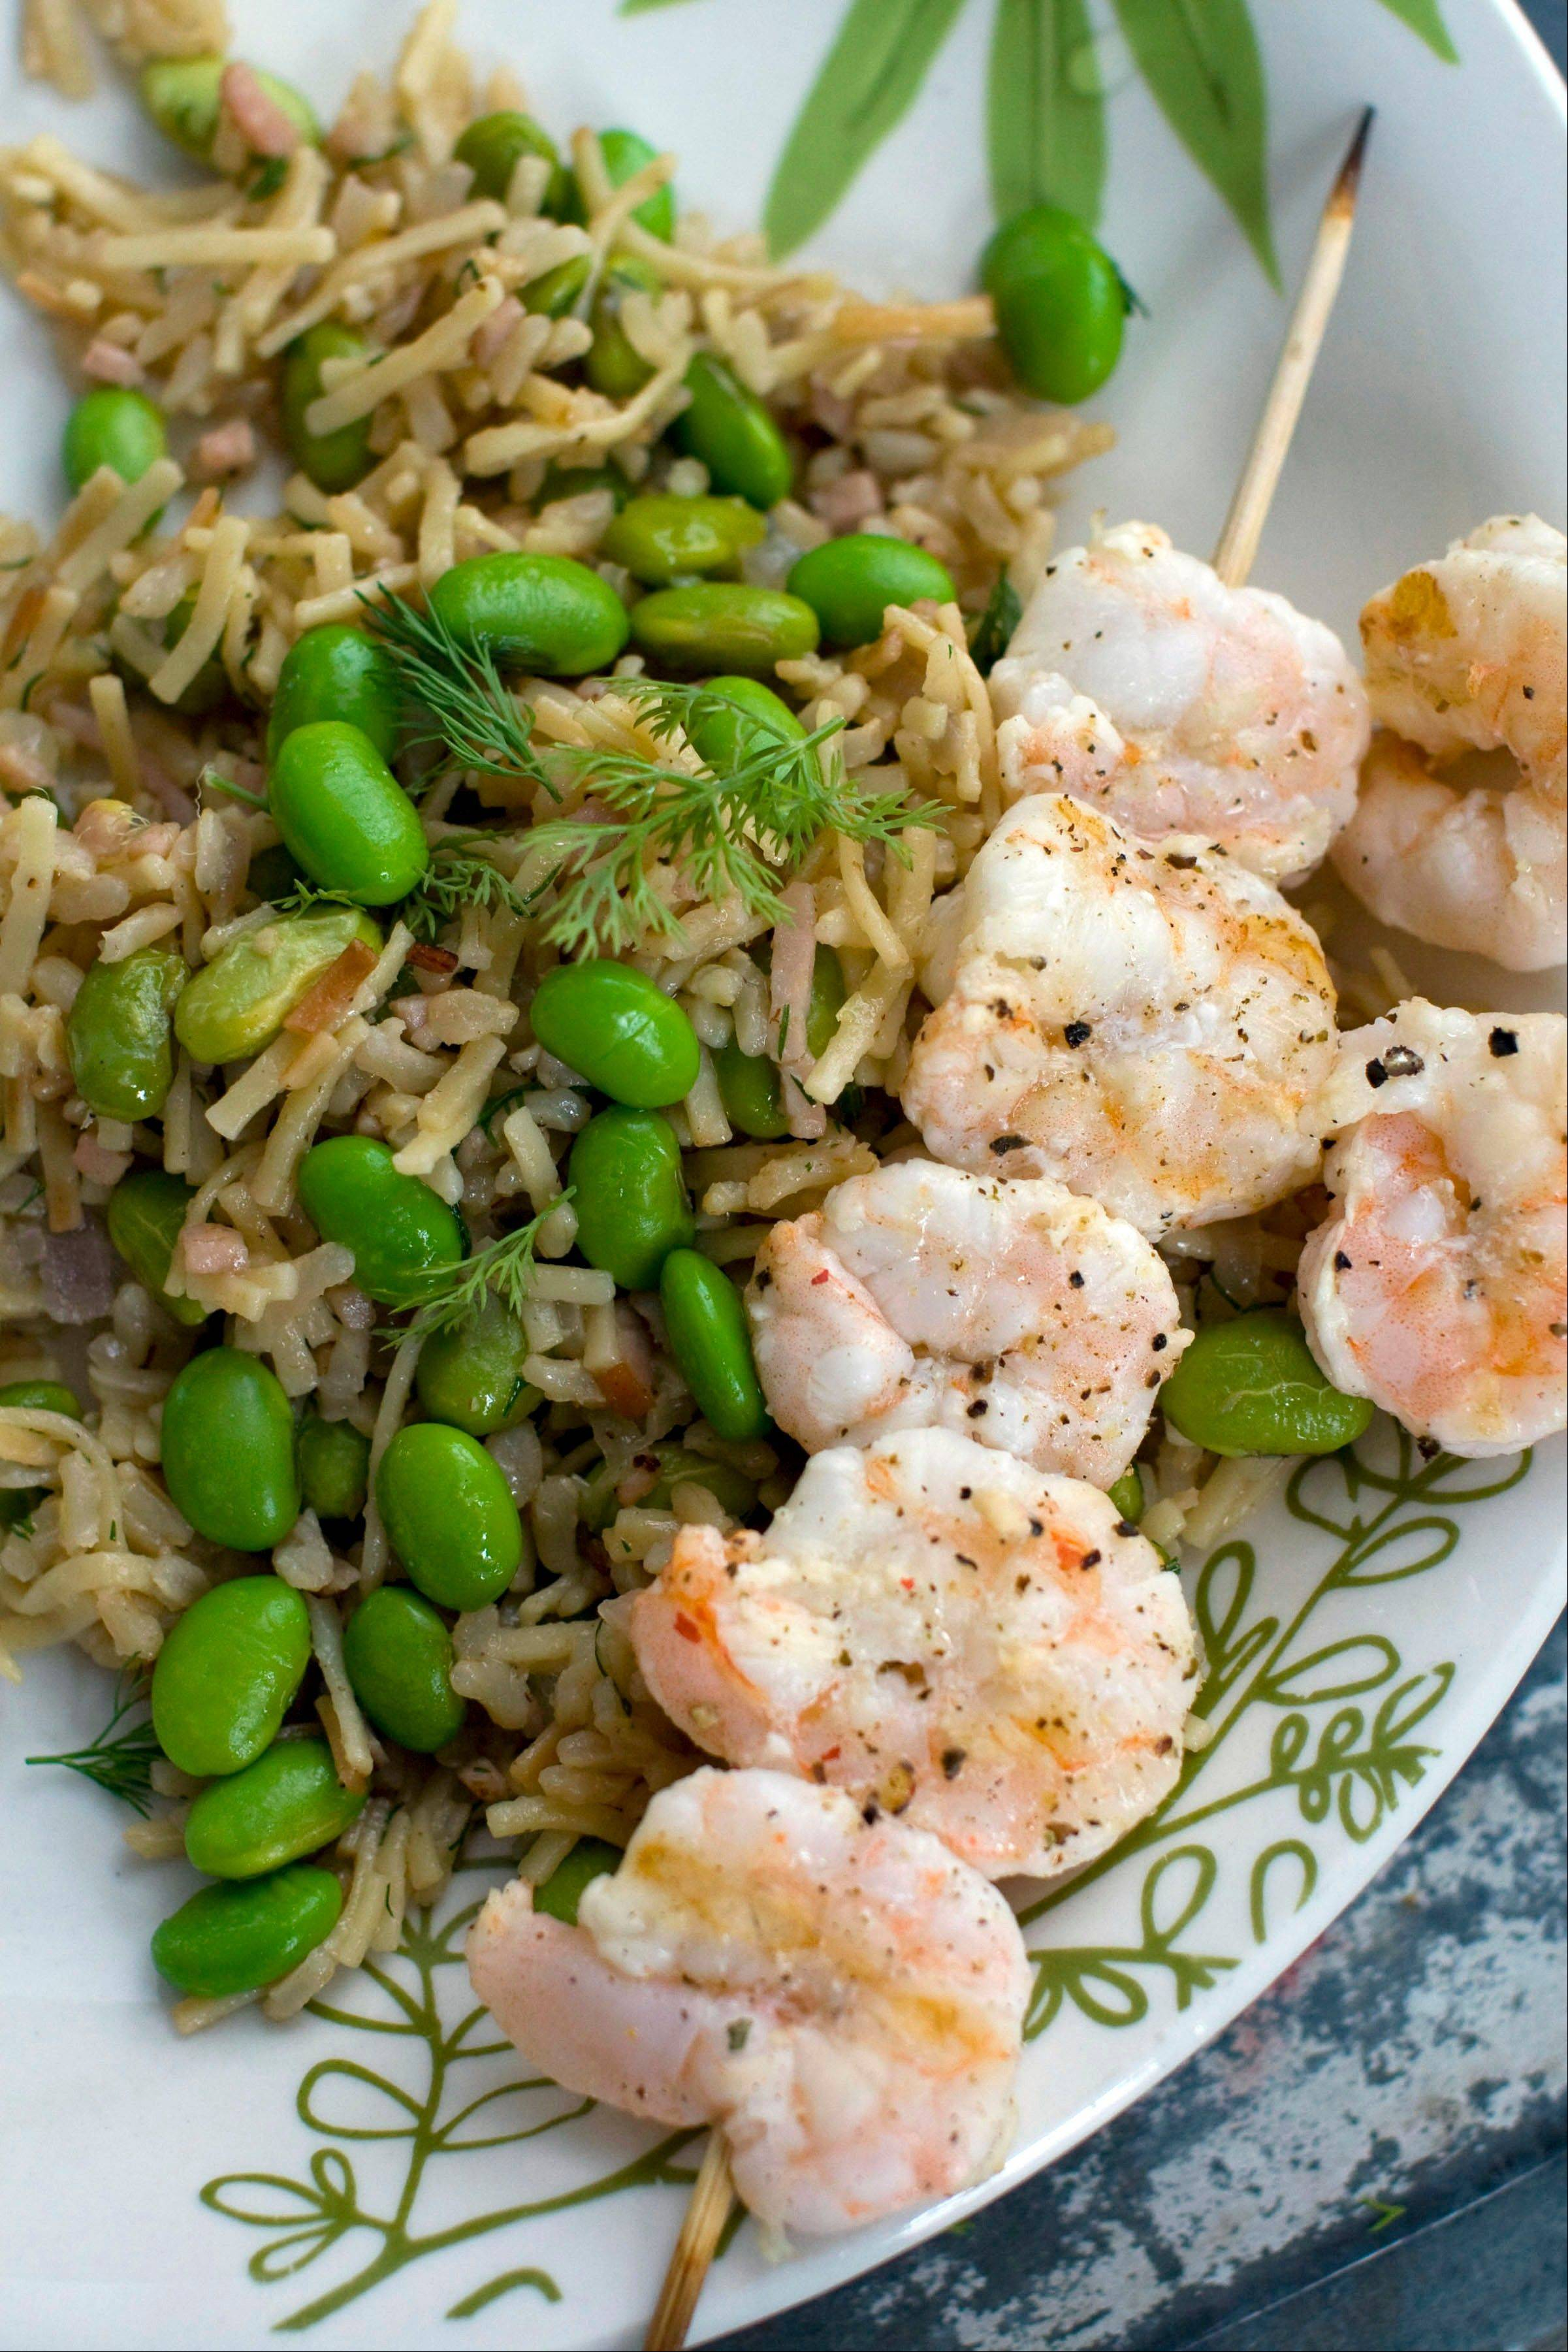 Rice and Noodle Pilaf with Edamame and Grilled Shrimp is a one-pot meal that can be on the table in around 35 minutes.